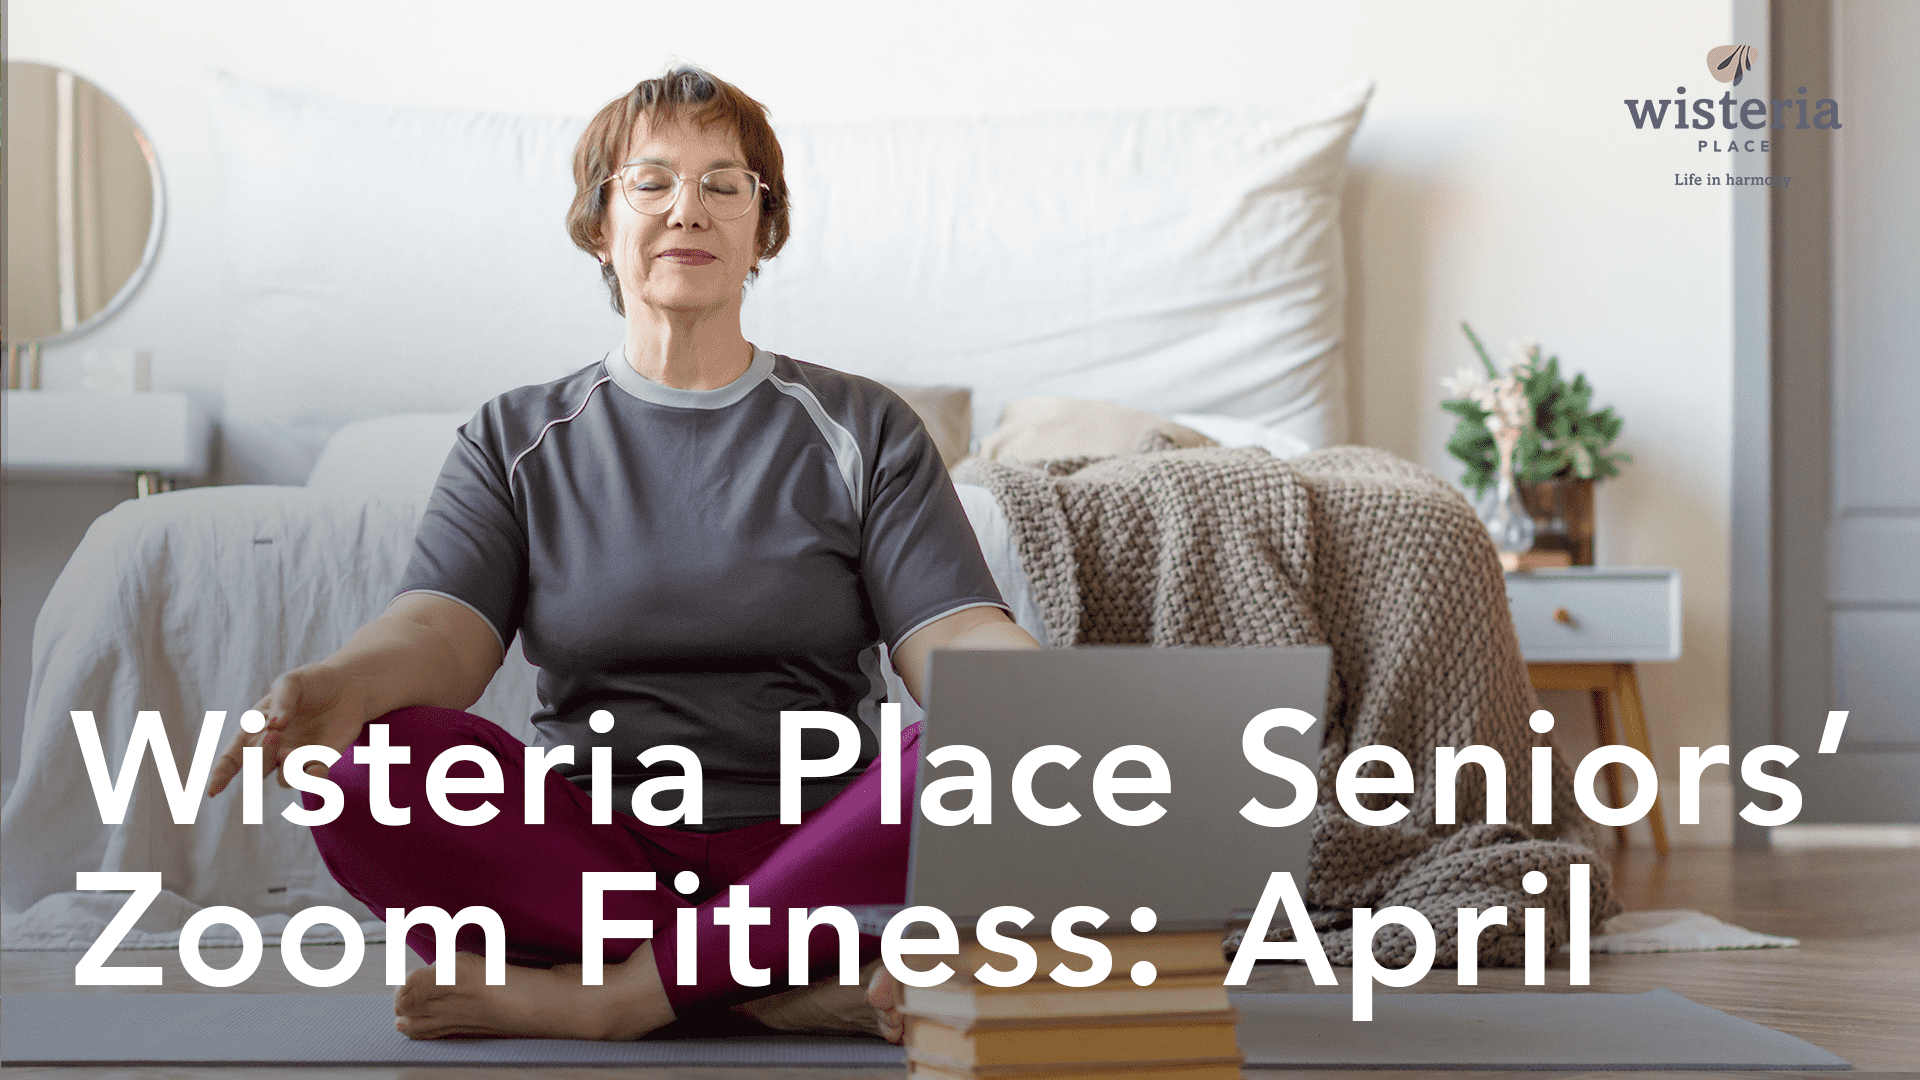 Wisteria Place Seniors' Zoom Fitness: April